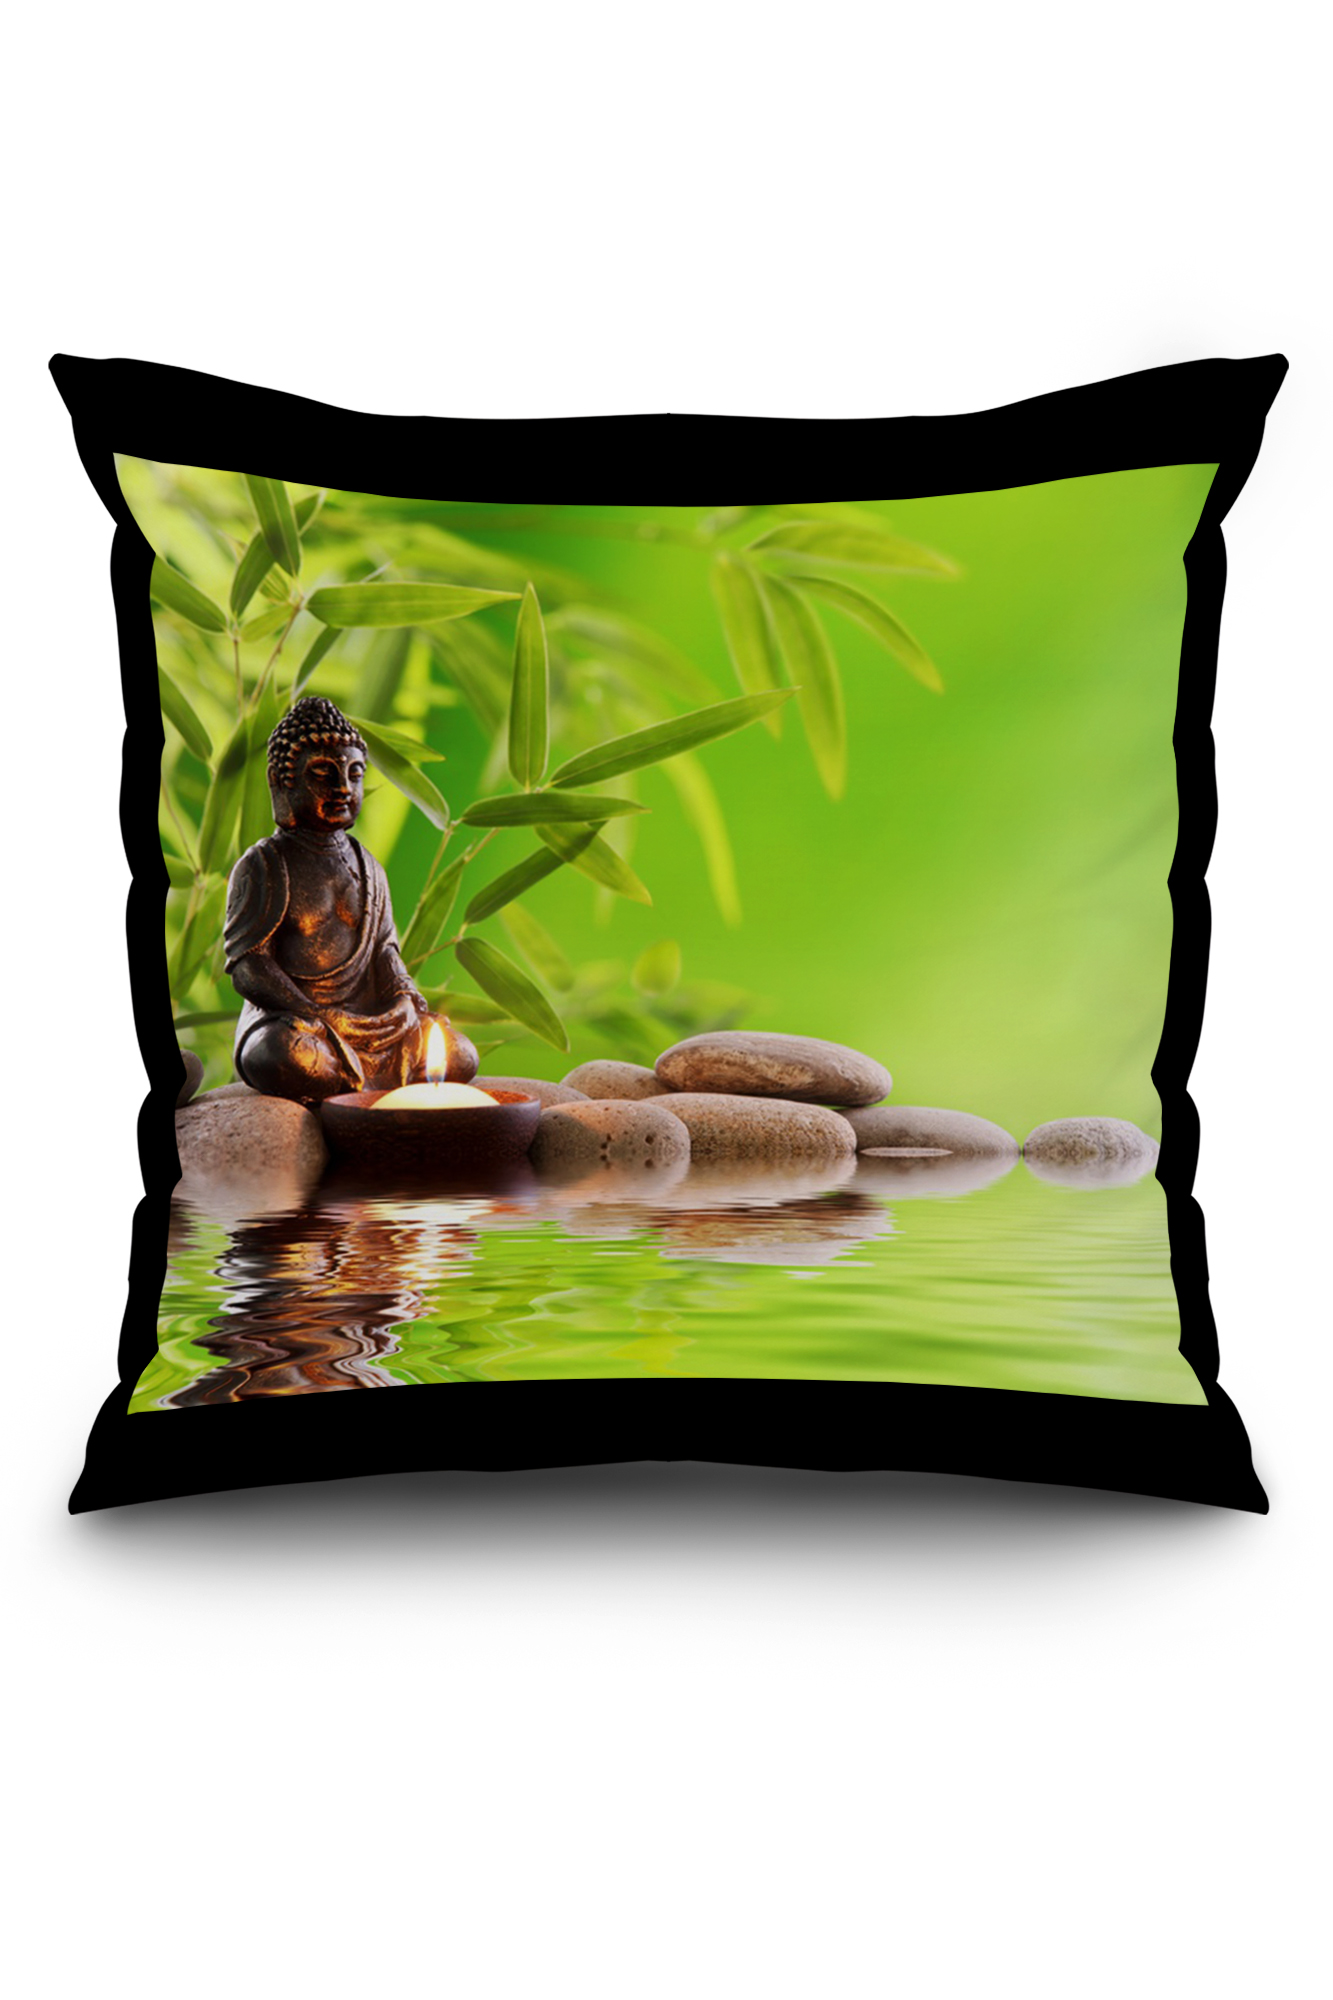 Buddha Zen Statue With Bamboo Photography A 89957 20x20